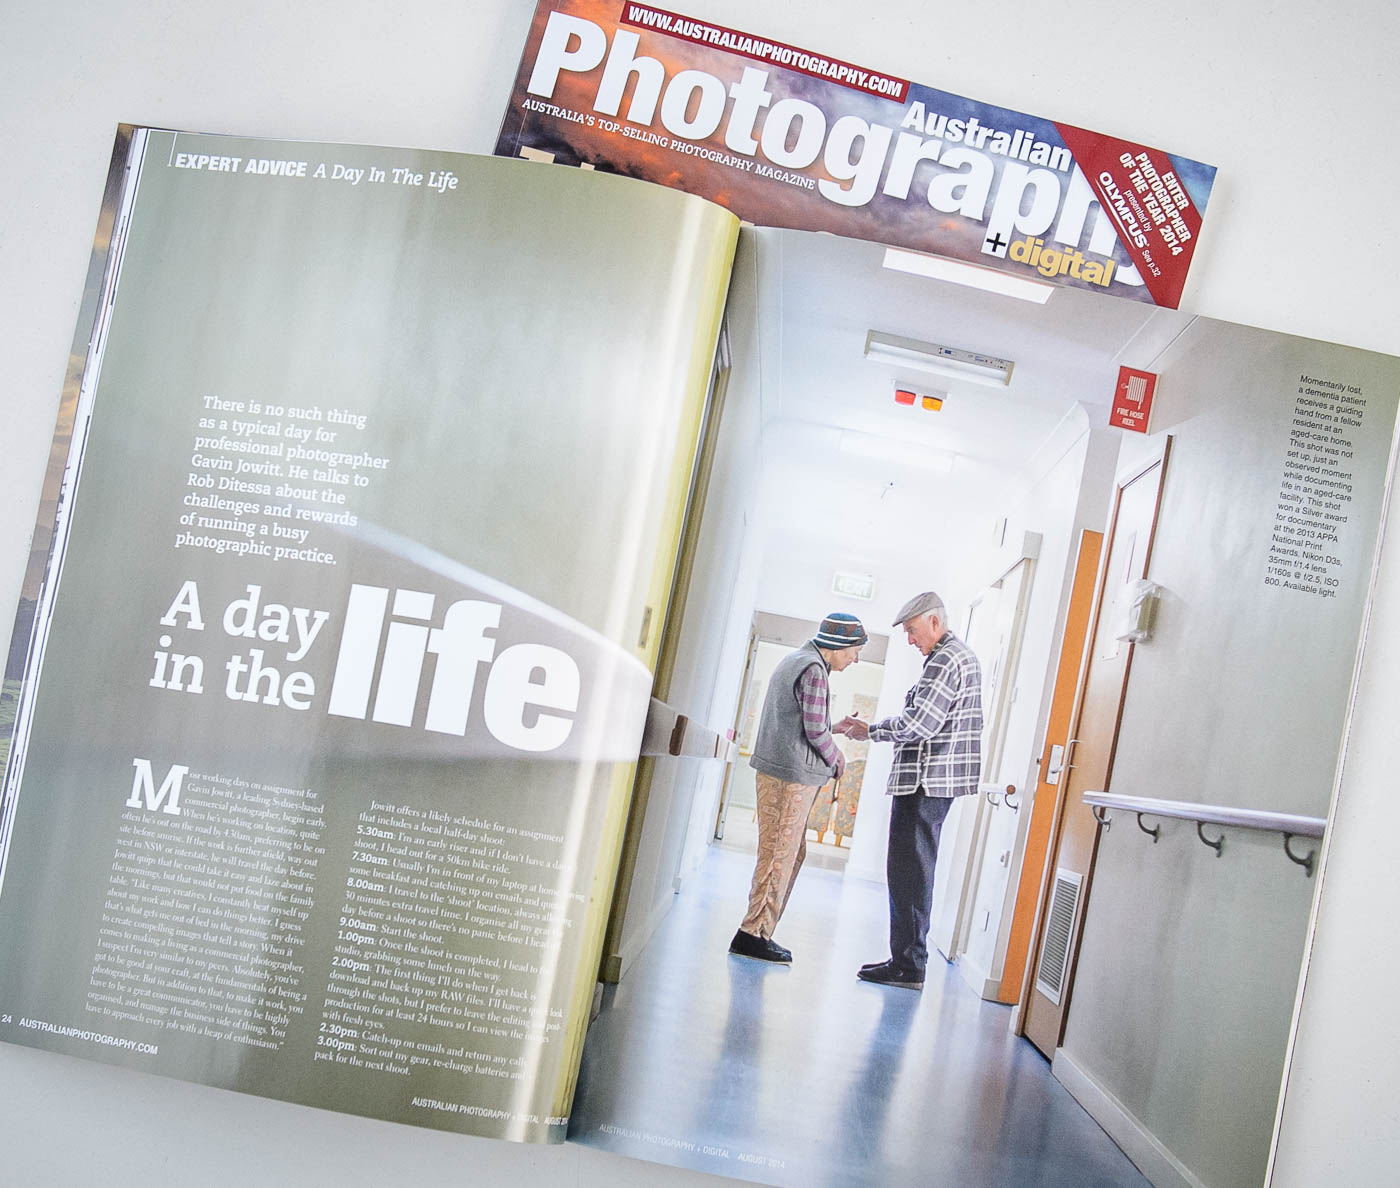 Australian Photography Magazine article